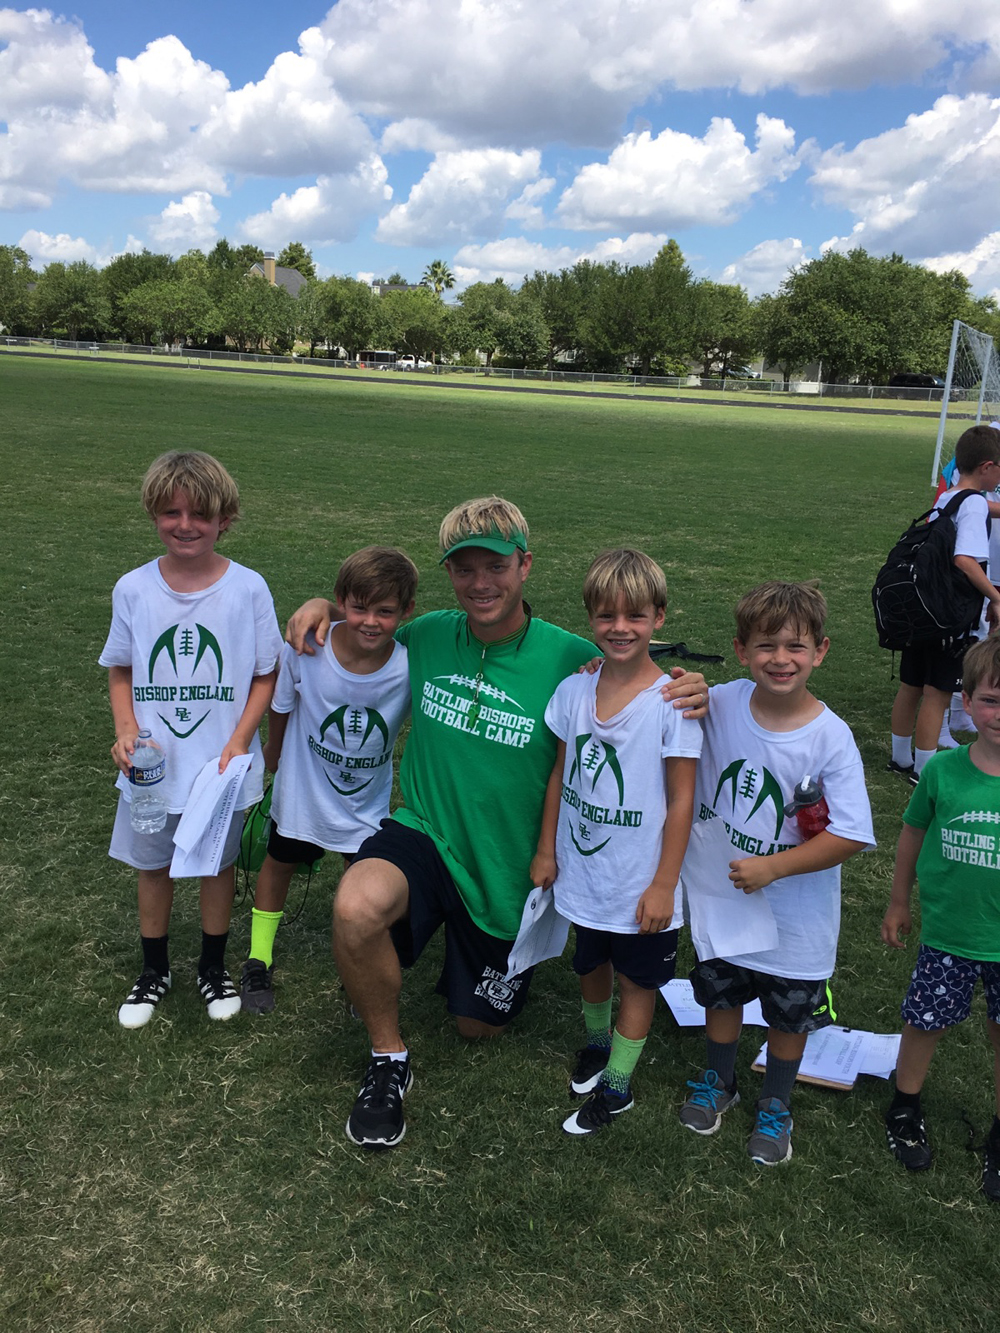 Bishop England Head Football Coach John Cantey (center) poses with Finn Gunter, Will Heffernan, Sawyer Gunter and Charlie Priester. The boys participated in the football camp led by Cantey and BE players this summer.